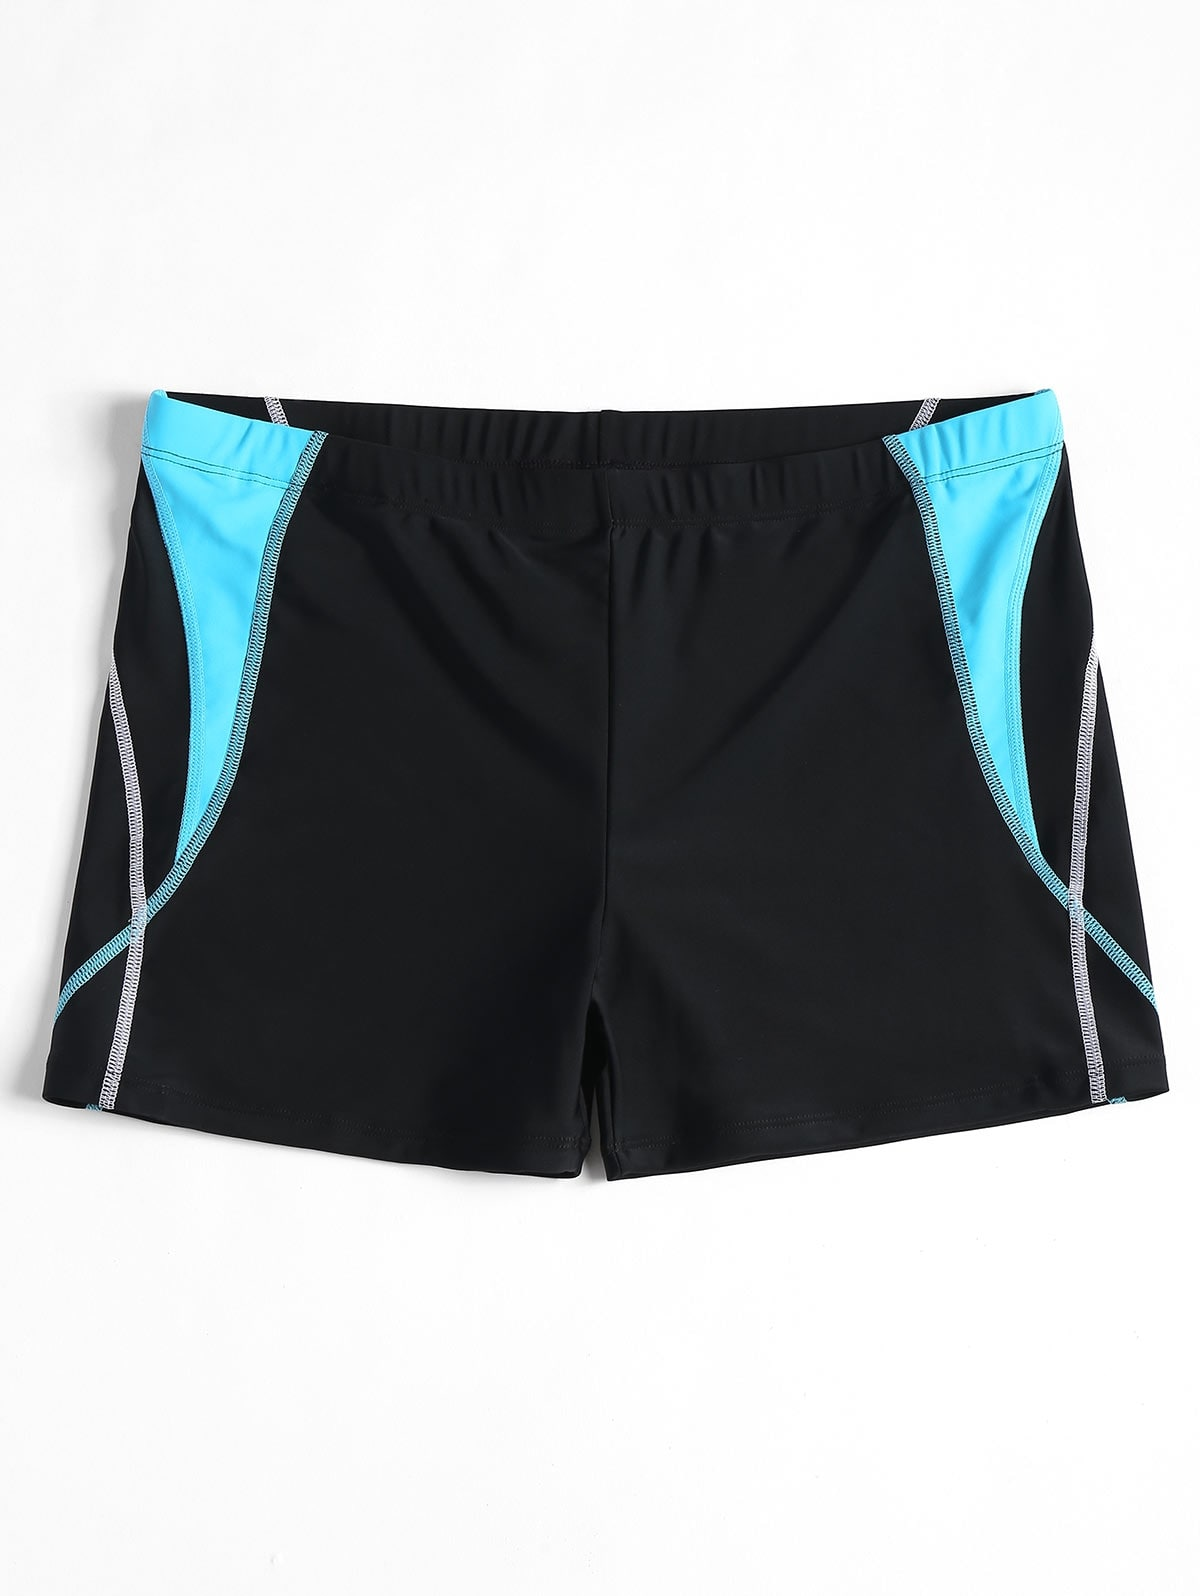 Stitching Color Block Swim Trunks